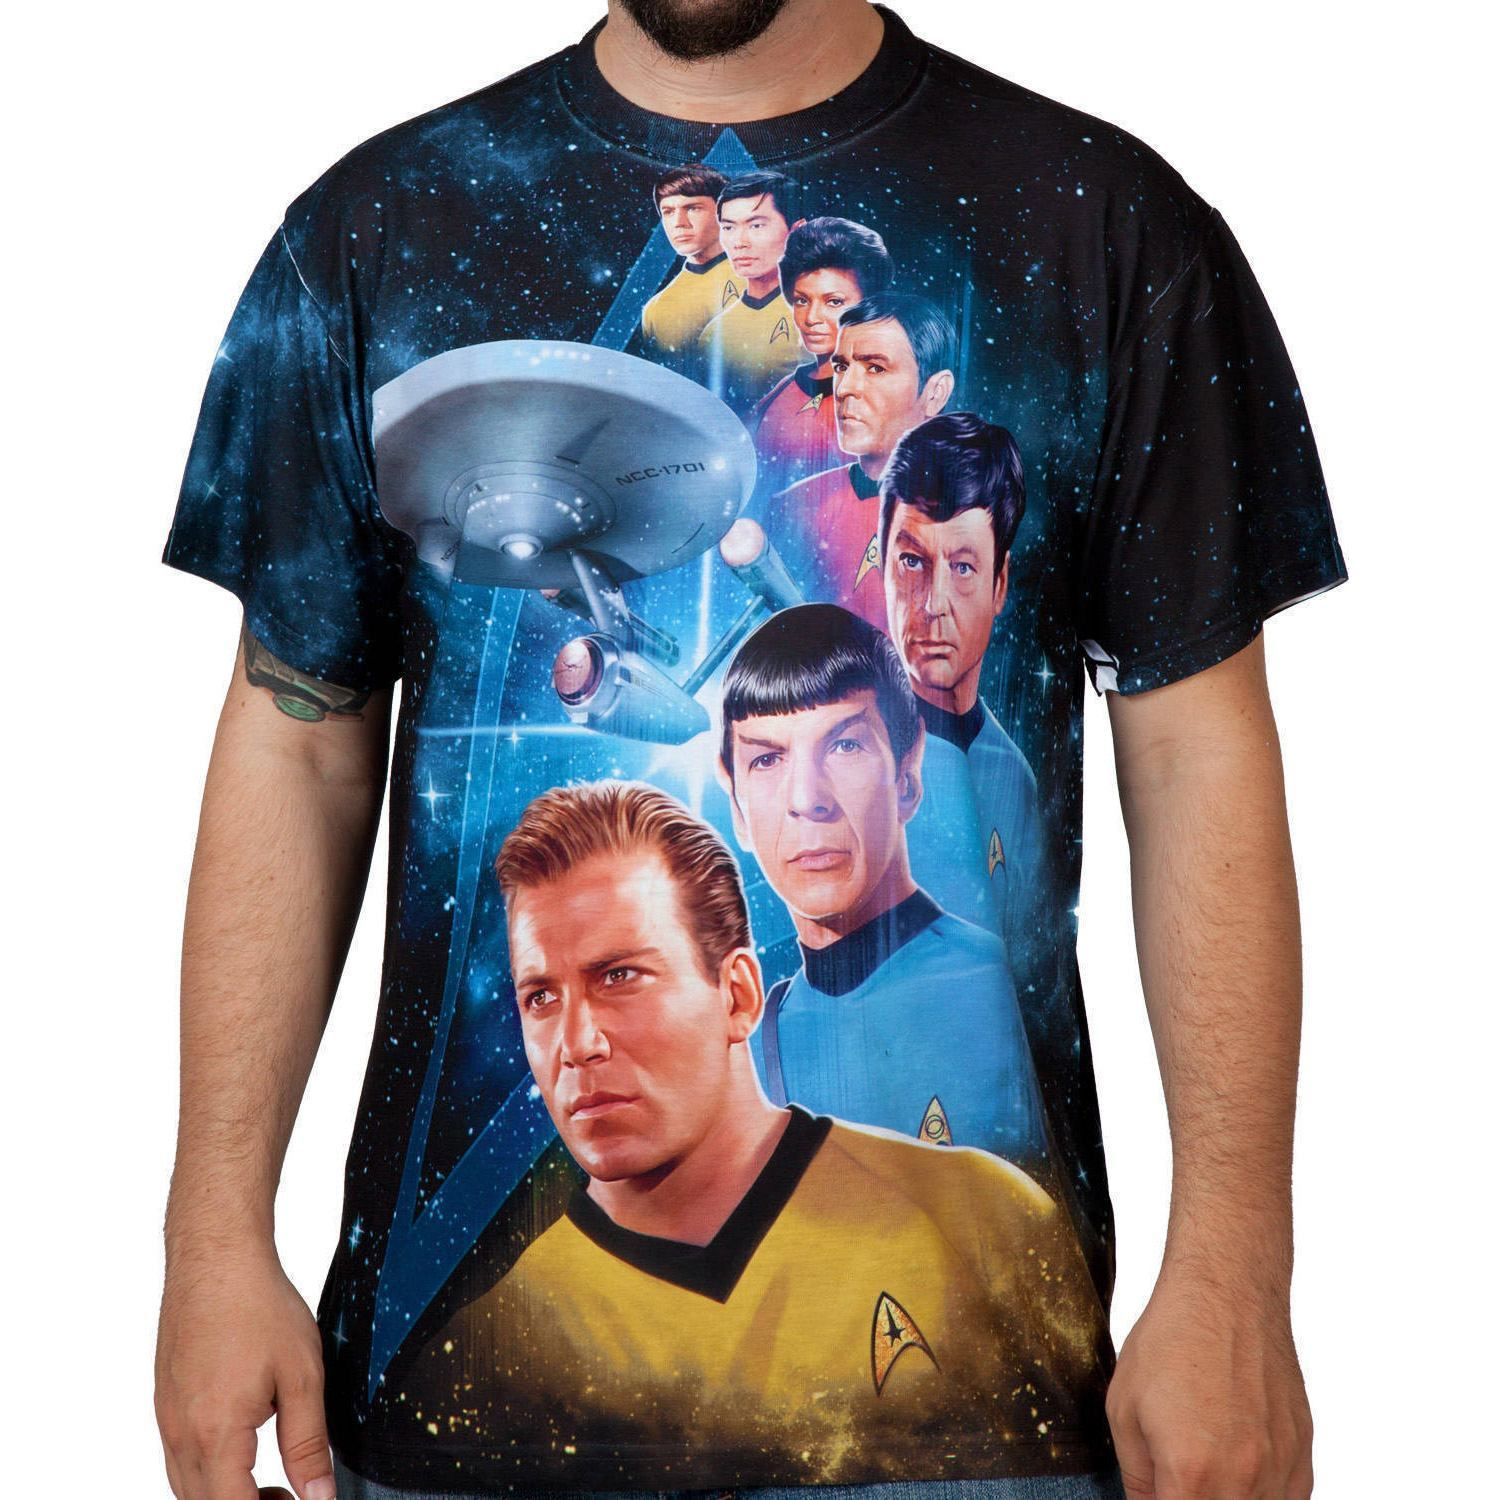 Star Trek TOS Sublimation Shirt